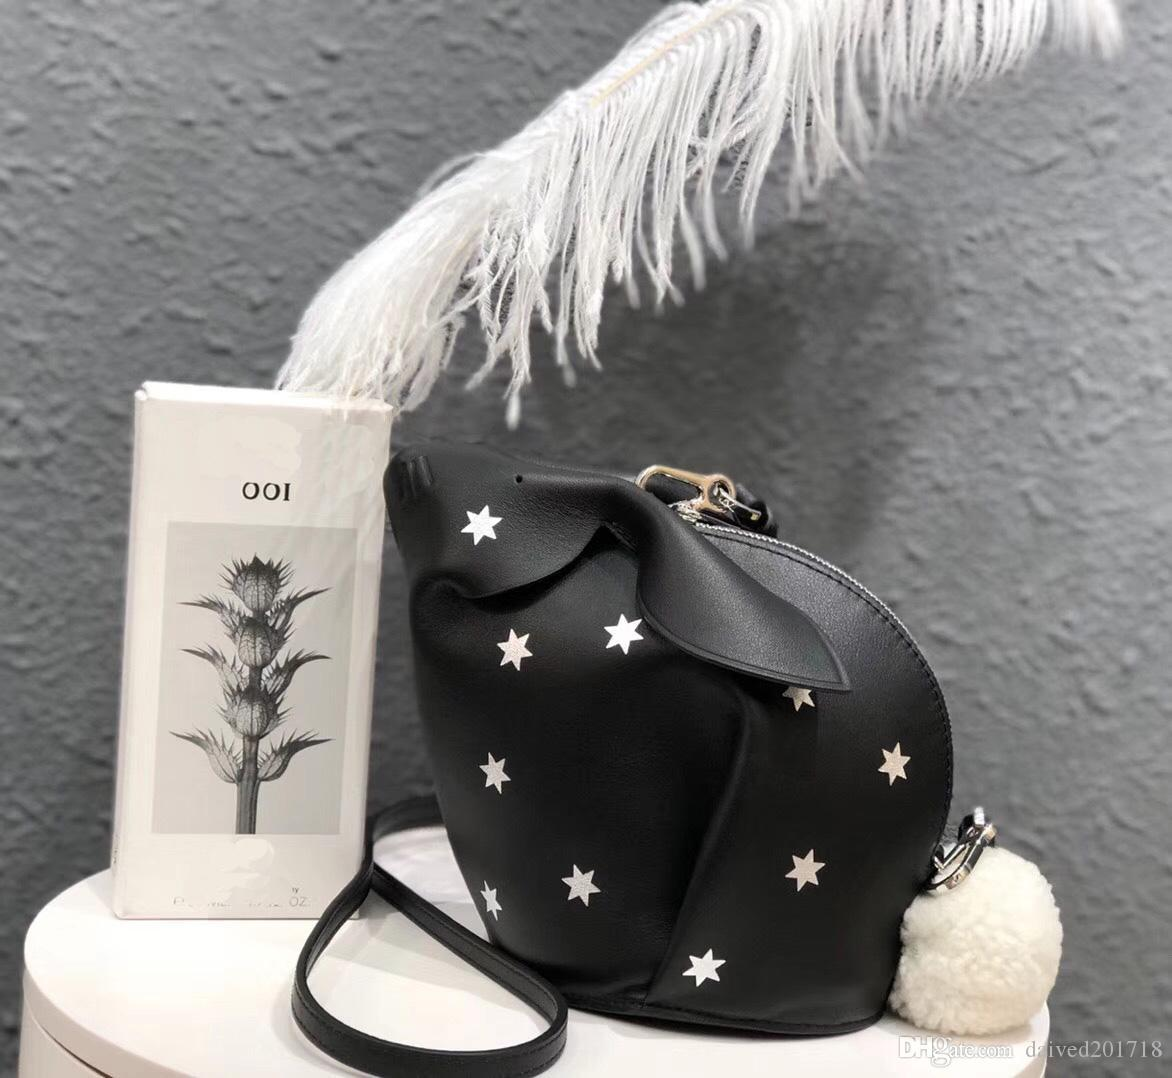 free shipping! orignal real Genuine leather fashion shoulder bag handbag presbyopic mini 0bag Rabbit shape star mobile phonen